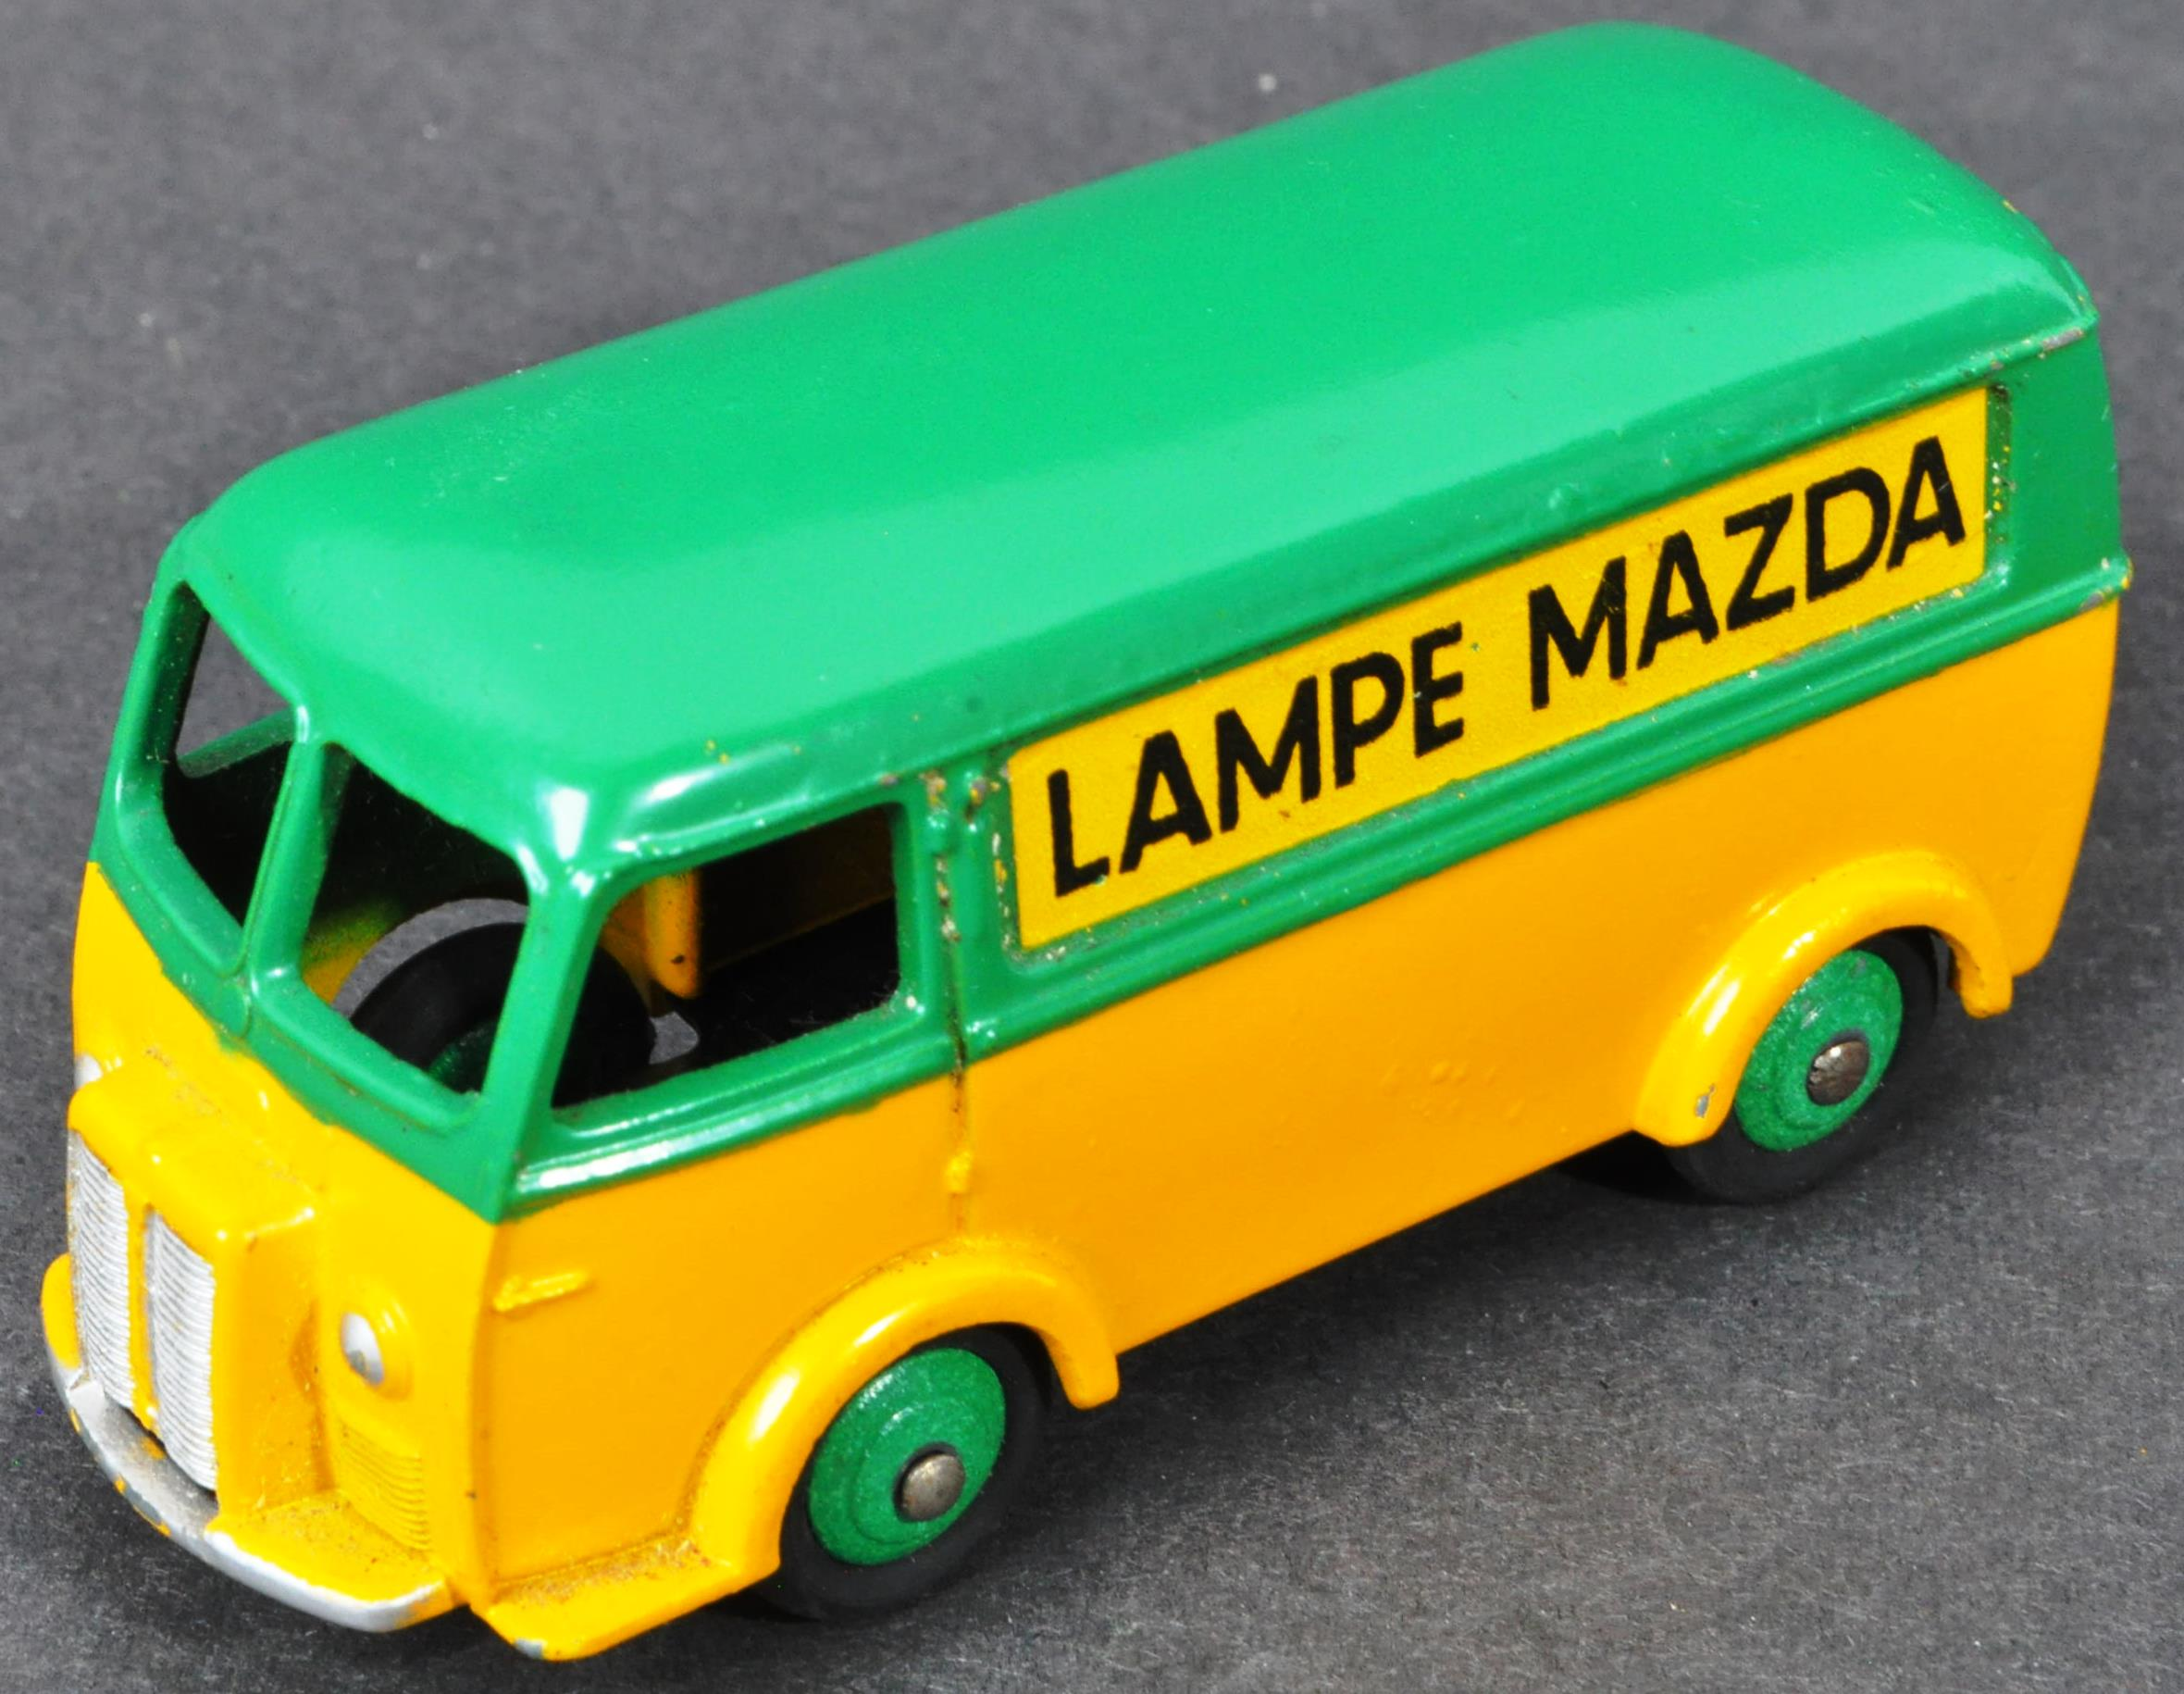 FRENCH DINKY TOYS - ORIGINAL BOXED VINTAGE DIECAST MODEL - Image 2 of 4